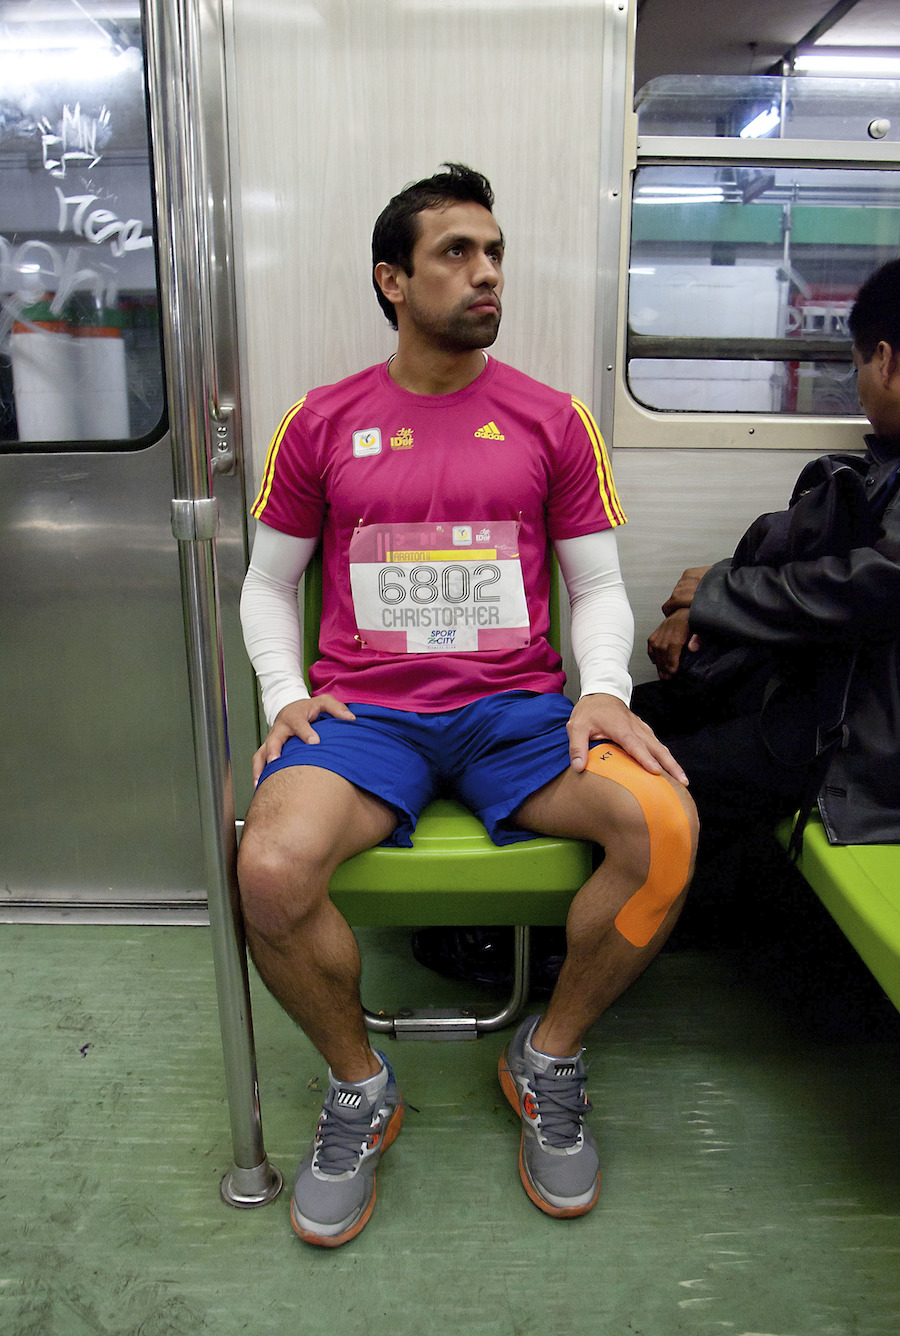 MEXICO CITY, MEXICO - AUGUST 25: An athlete travels by subway prior to the Mexico City International Marathon on August 25, 2013 in Mexico City, Mexico. (Photo by Israel Nu?ez/LatinContent/Getty Images)